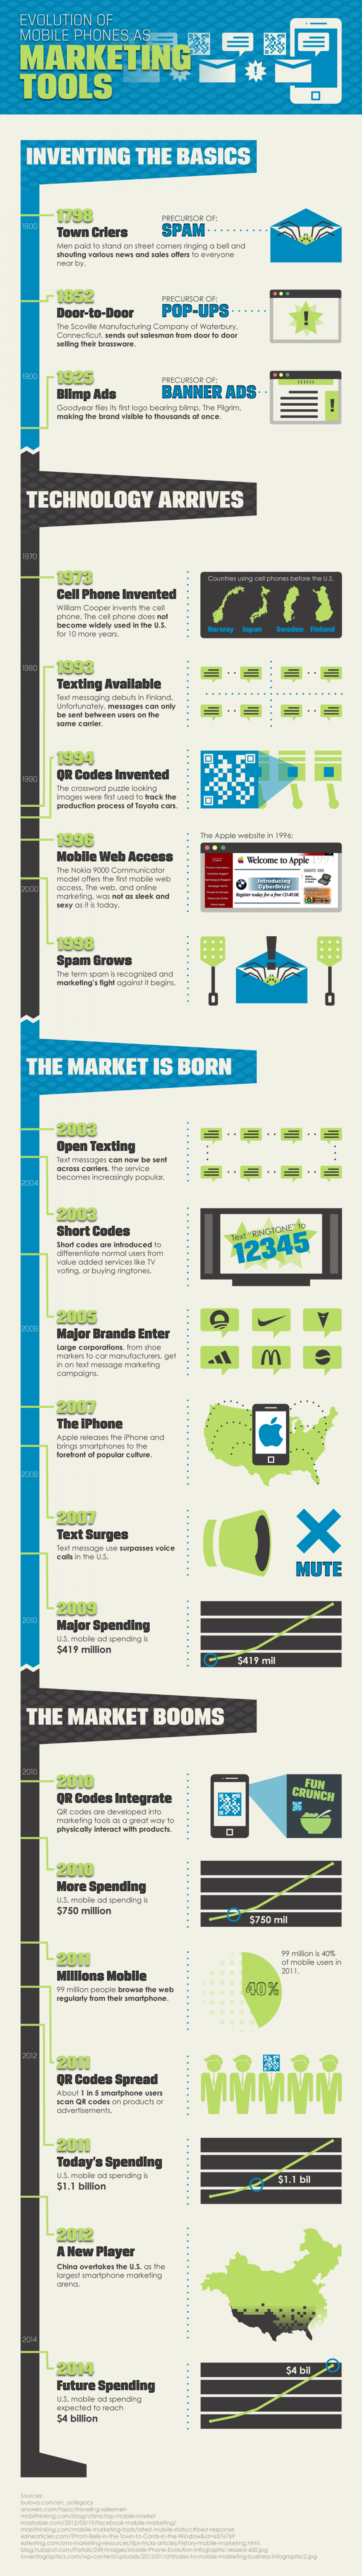 Mobile Phones as Marketing Tools Infographic